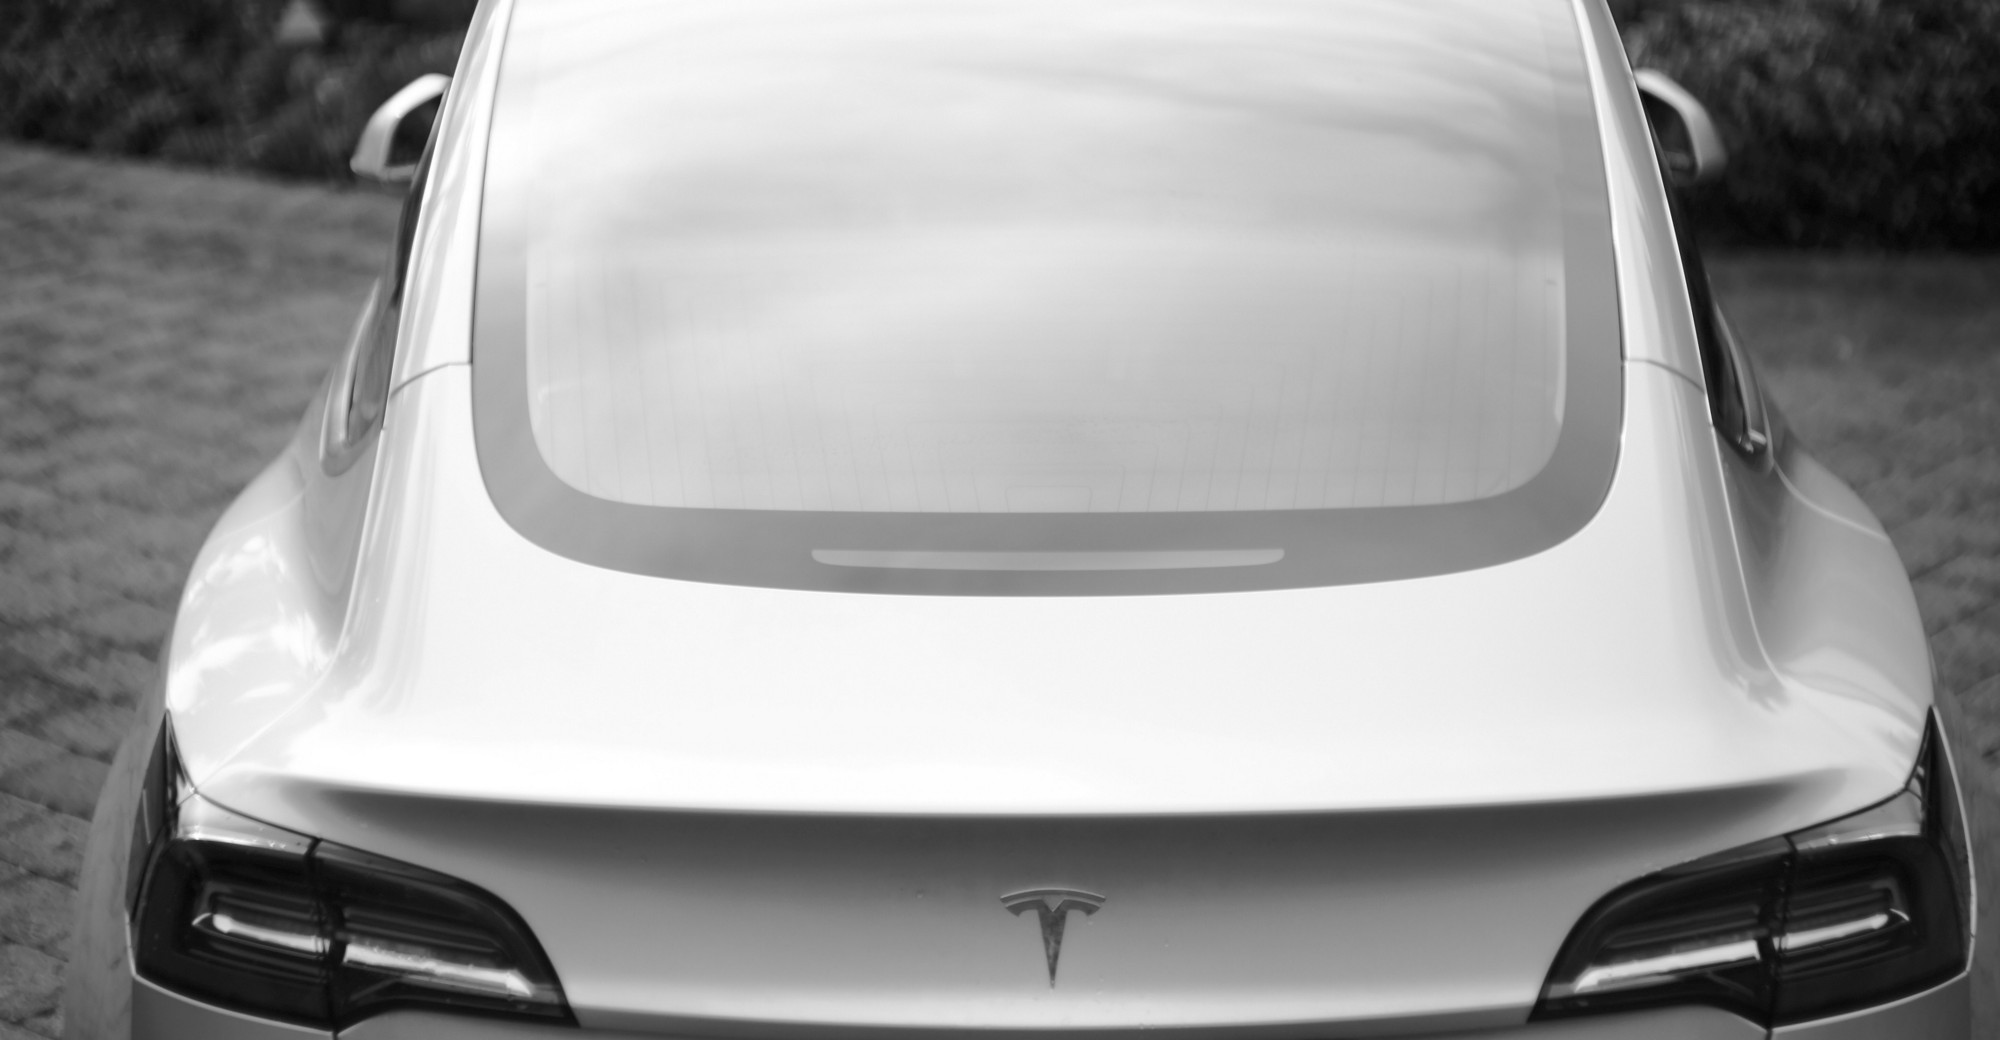 On The Tesla Model 3 Noteworthy Journal Blog Fuse Box And Thats Really Just It Is A Design Technology Company That Happens To Make Cars Not Unlike Apple